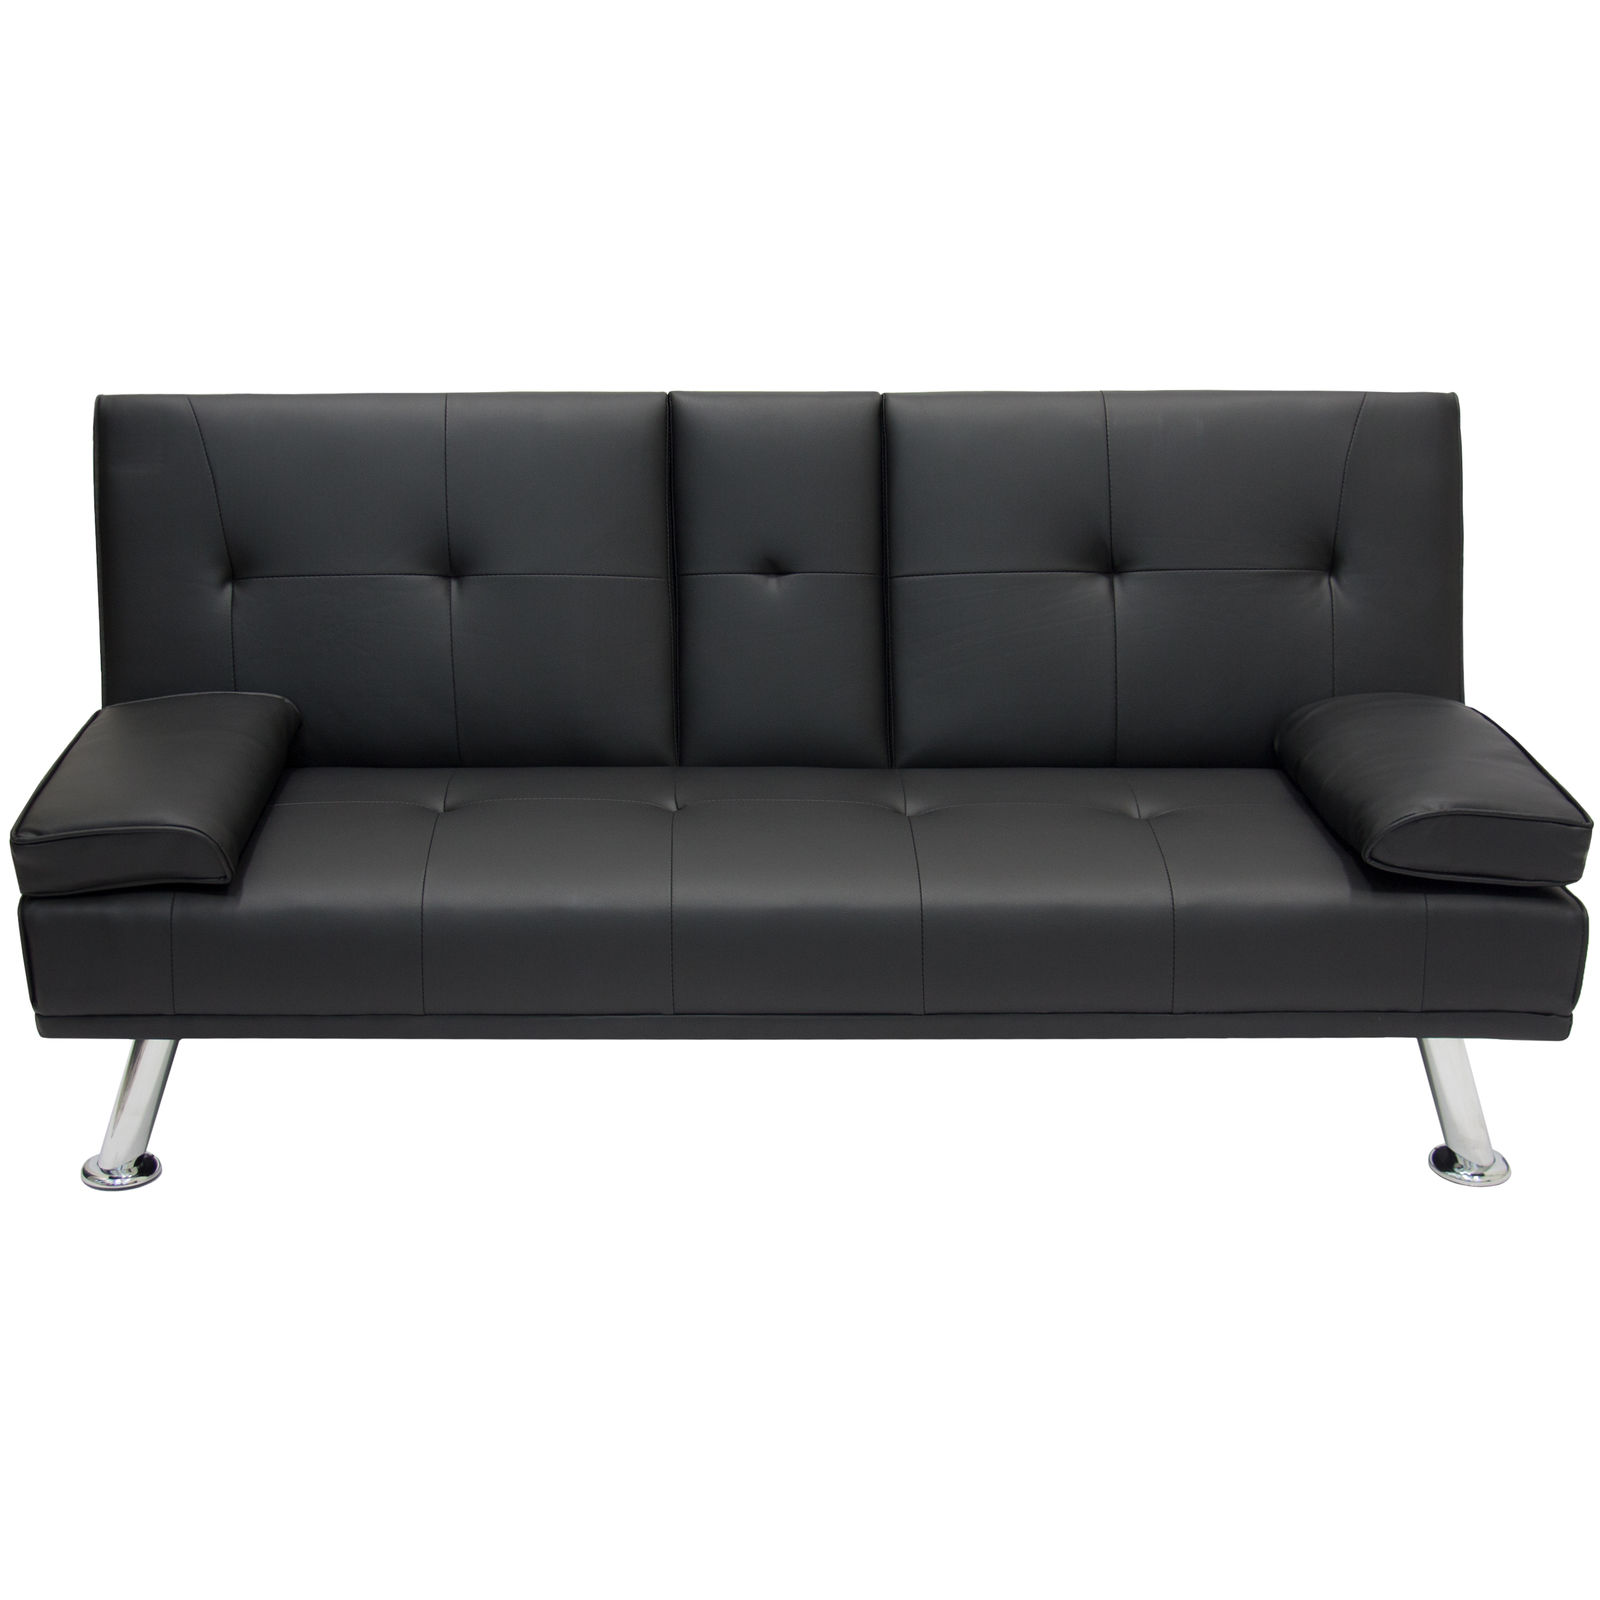 NEW DELUXE FUTON SOFA BED COUCH CUP HOLDERS SFWF SFBF AS LOW AS $199.95 EA